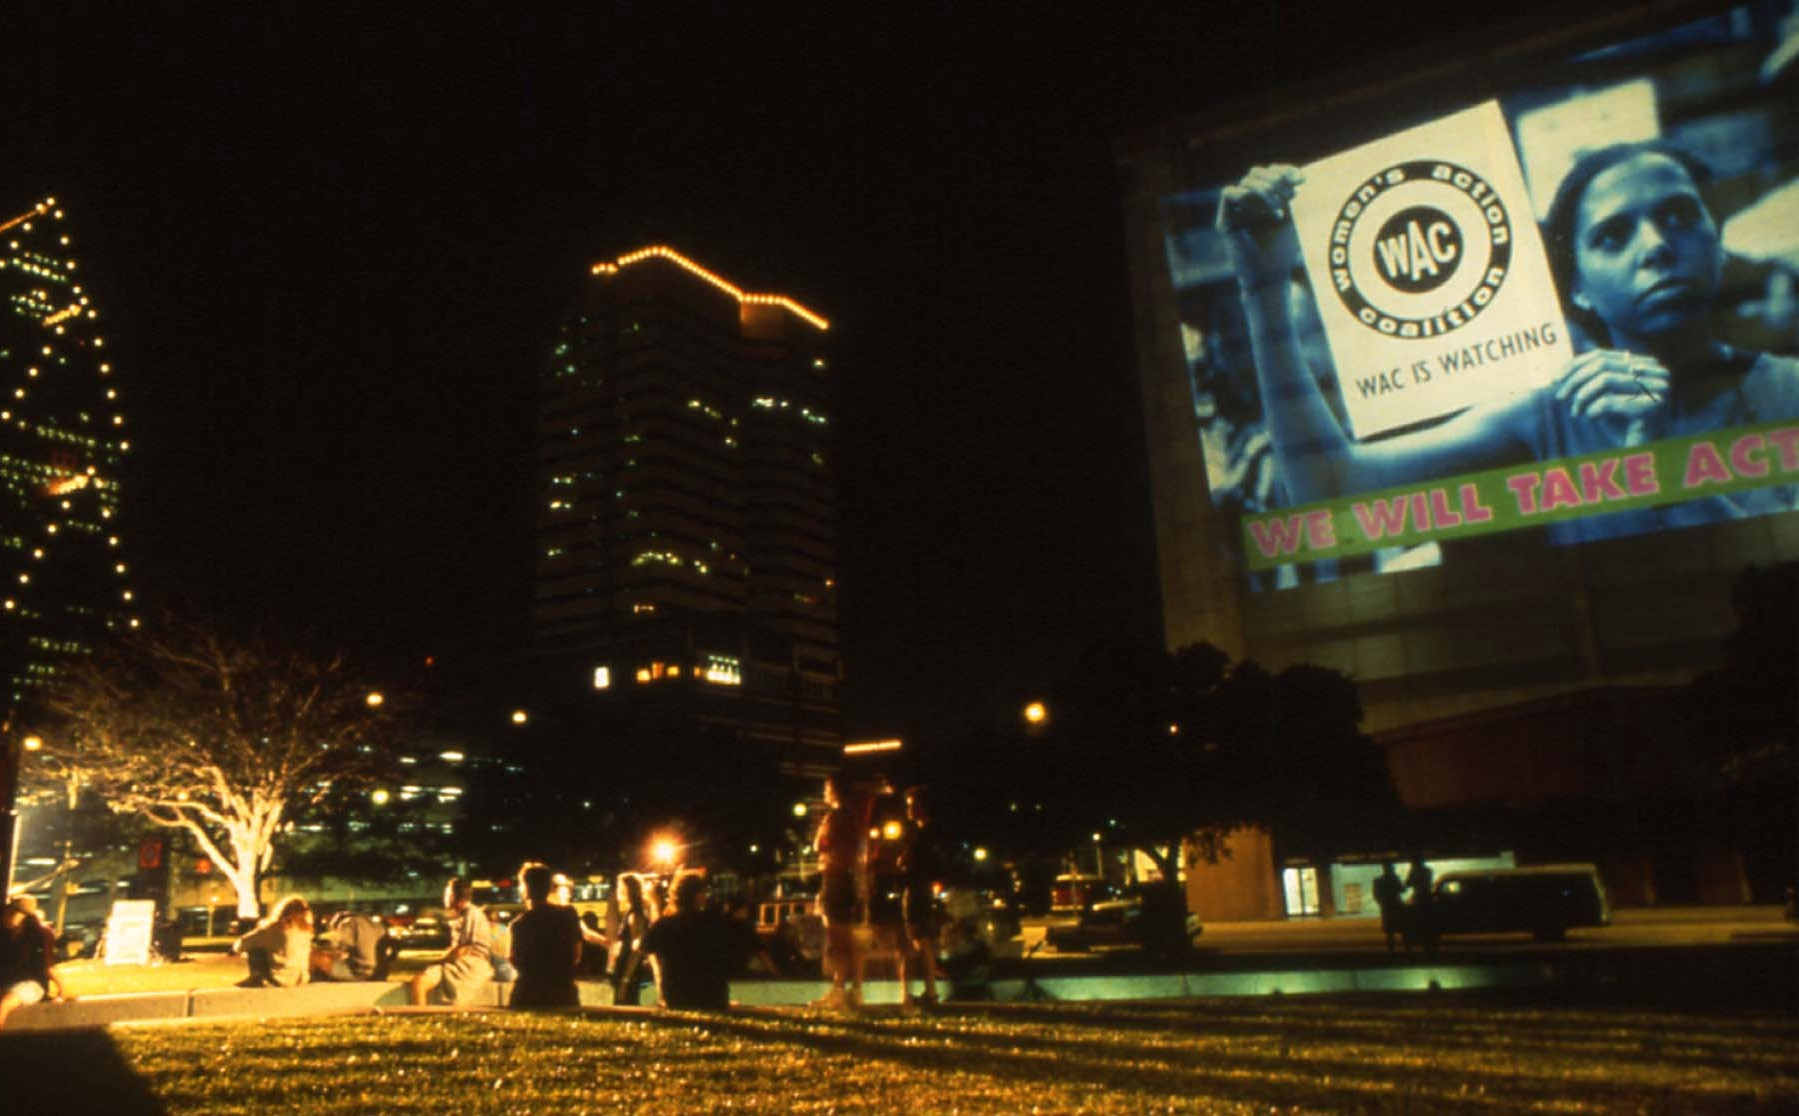 Women Ignite, sound & light show produced by WAC in Houston, Texas. 1992